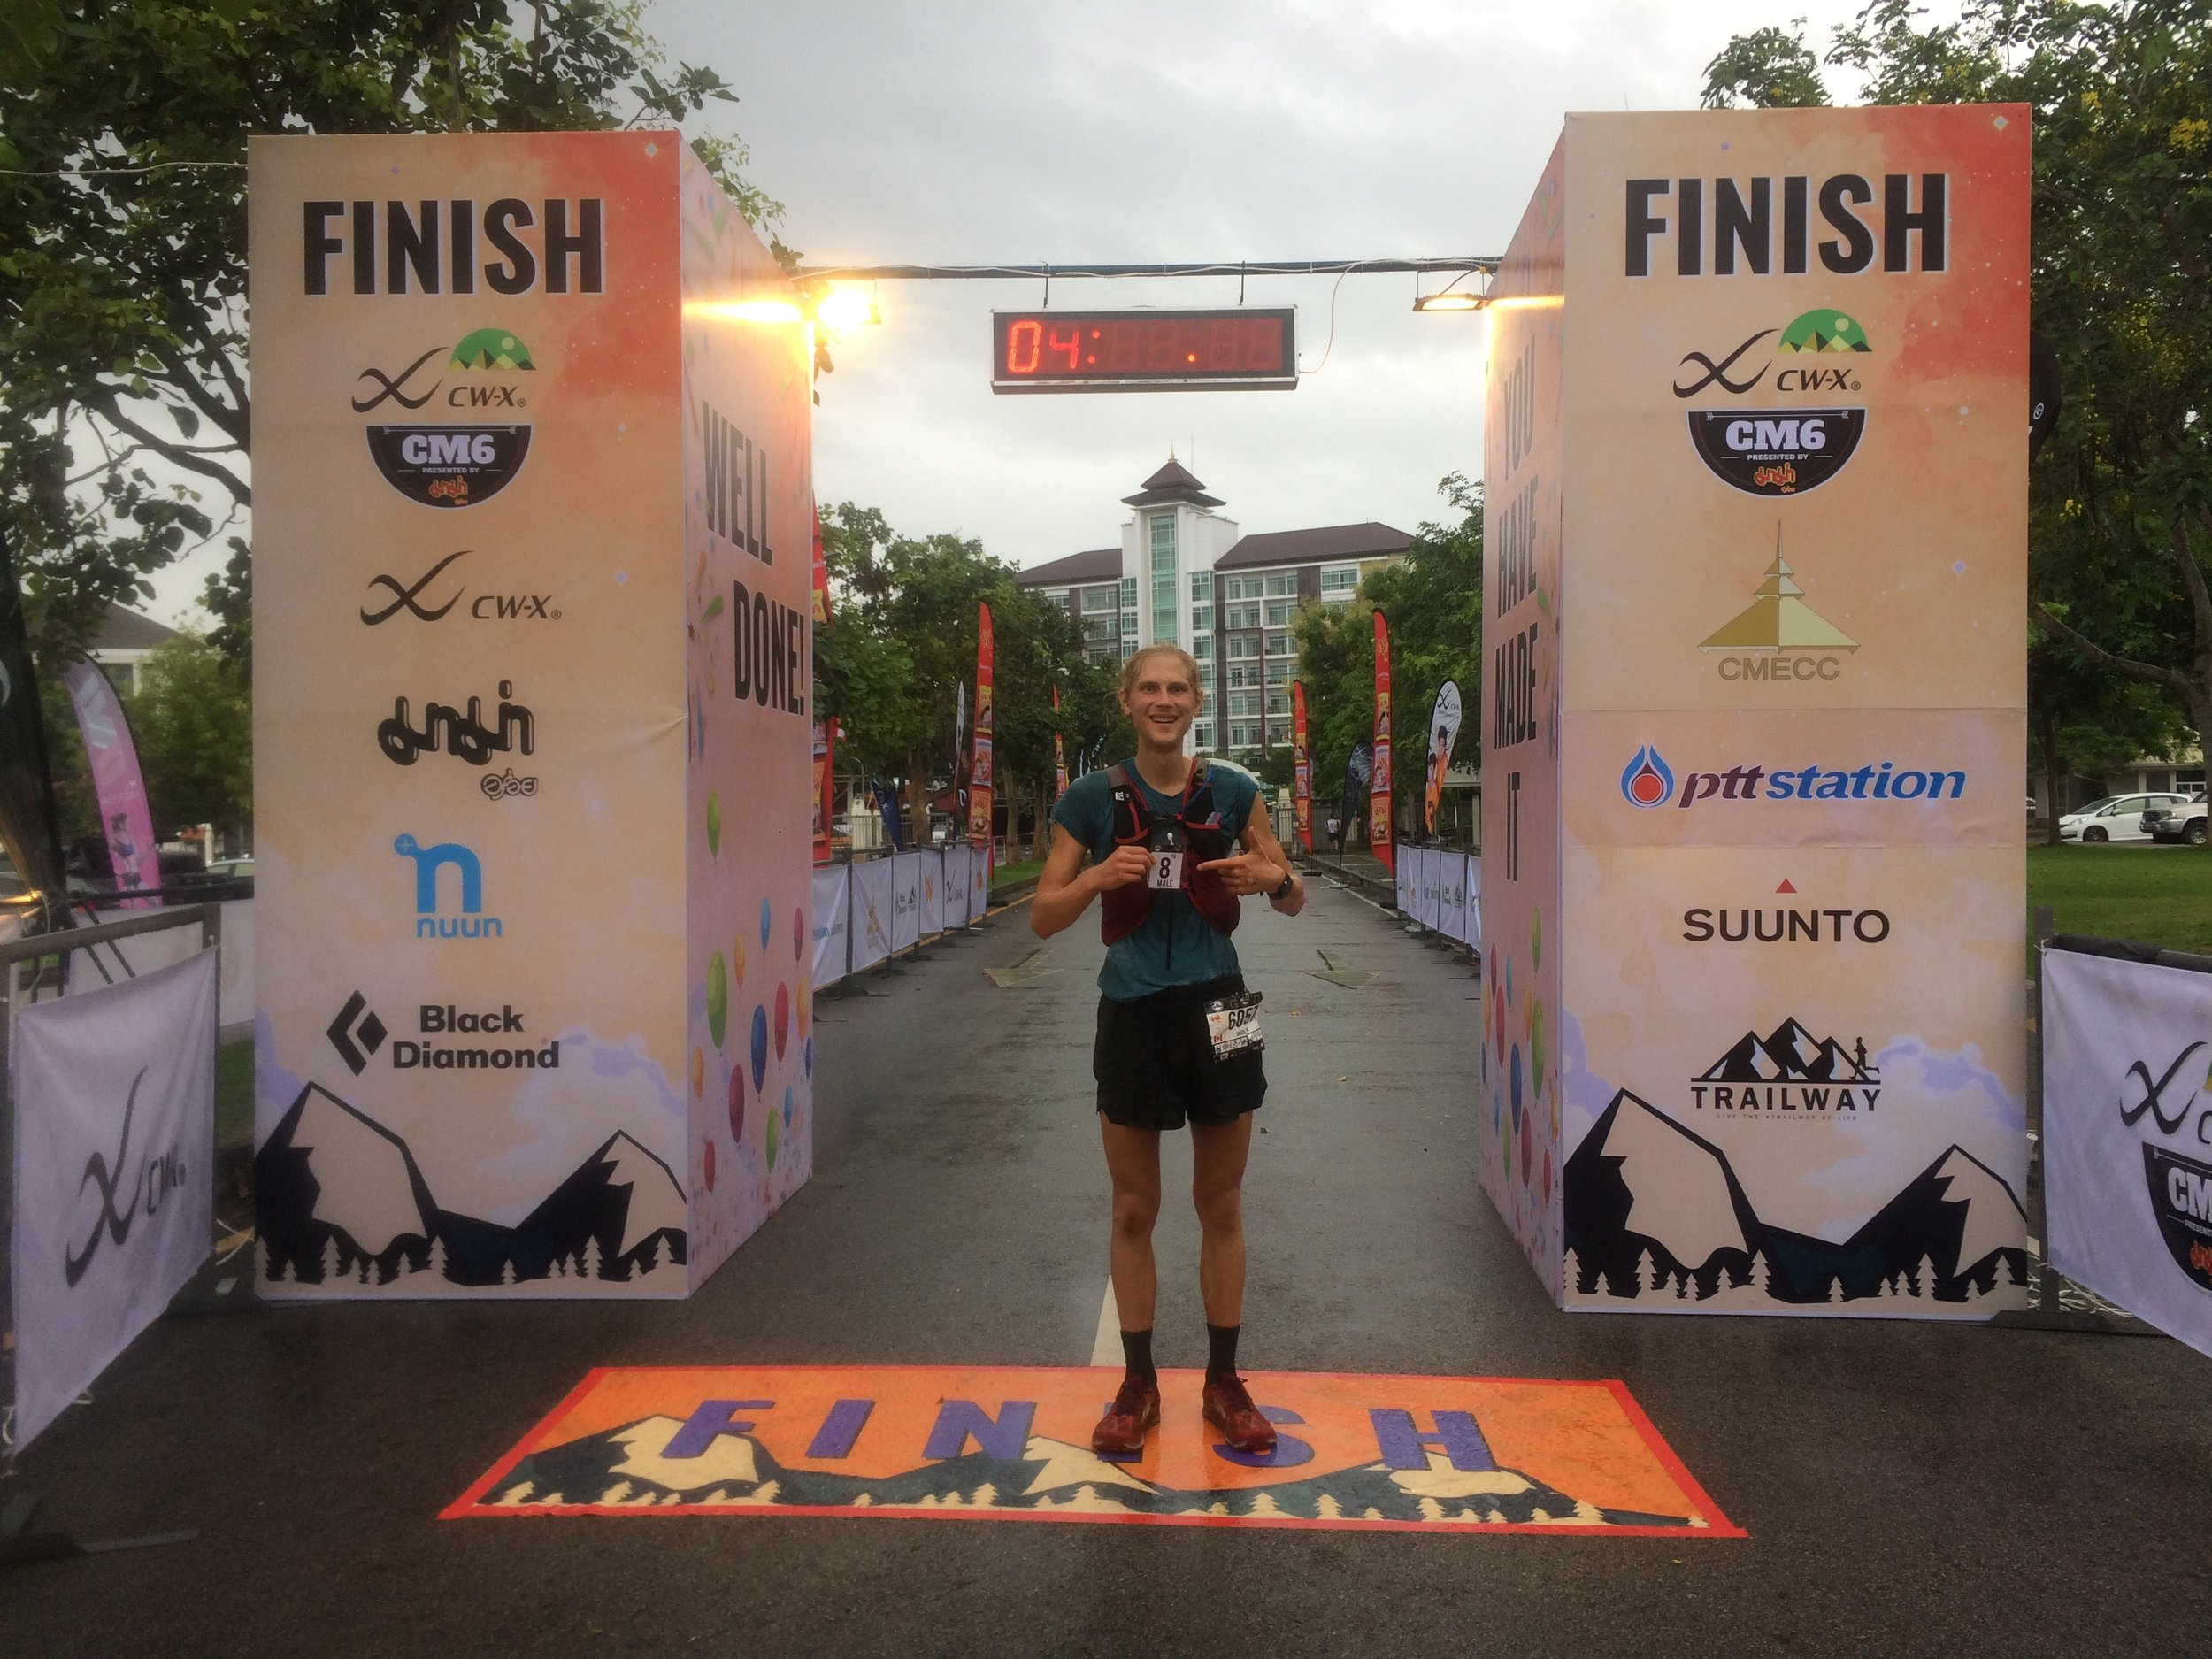 Me at the finish.  Finish time 28:21:54.  Shocked that got 8th.